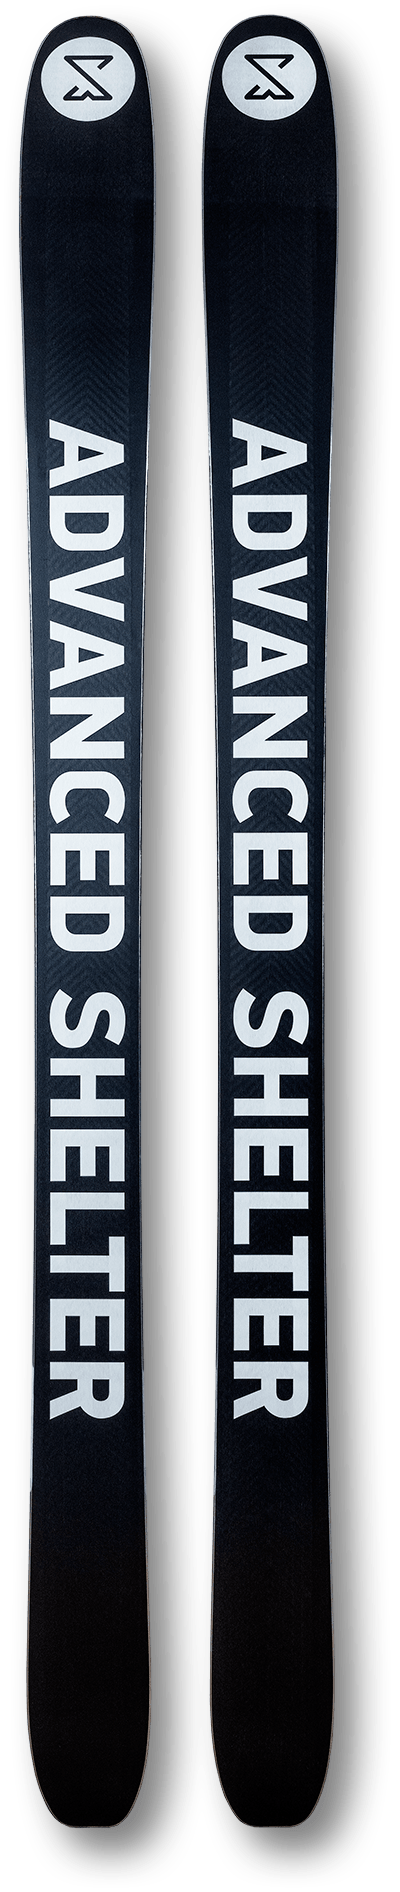 Advanced Shelter Skis Top